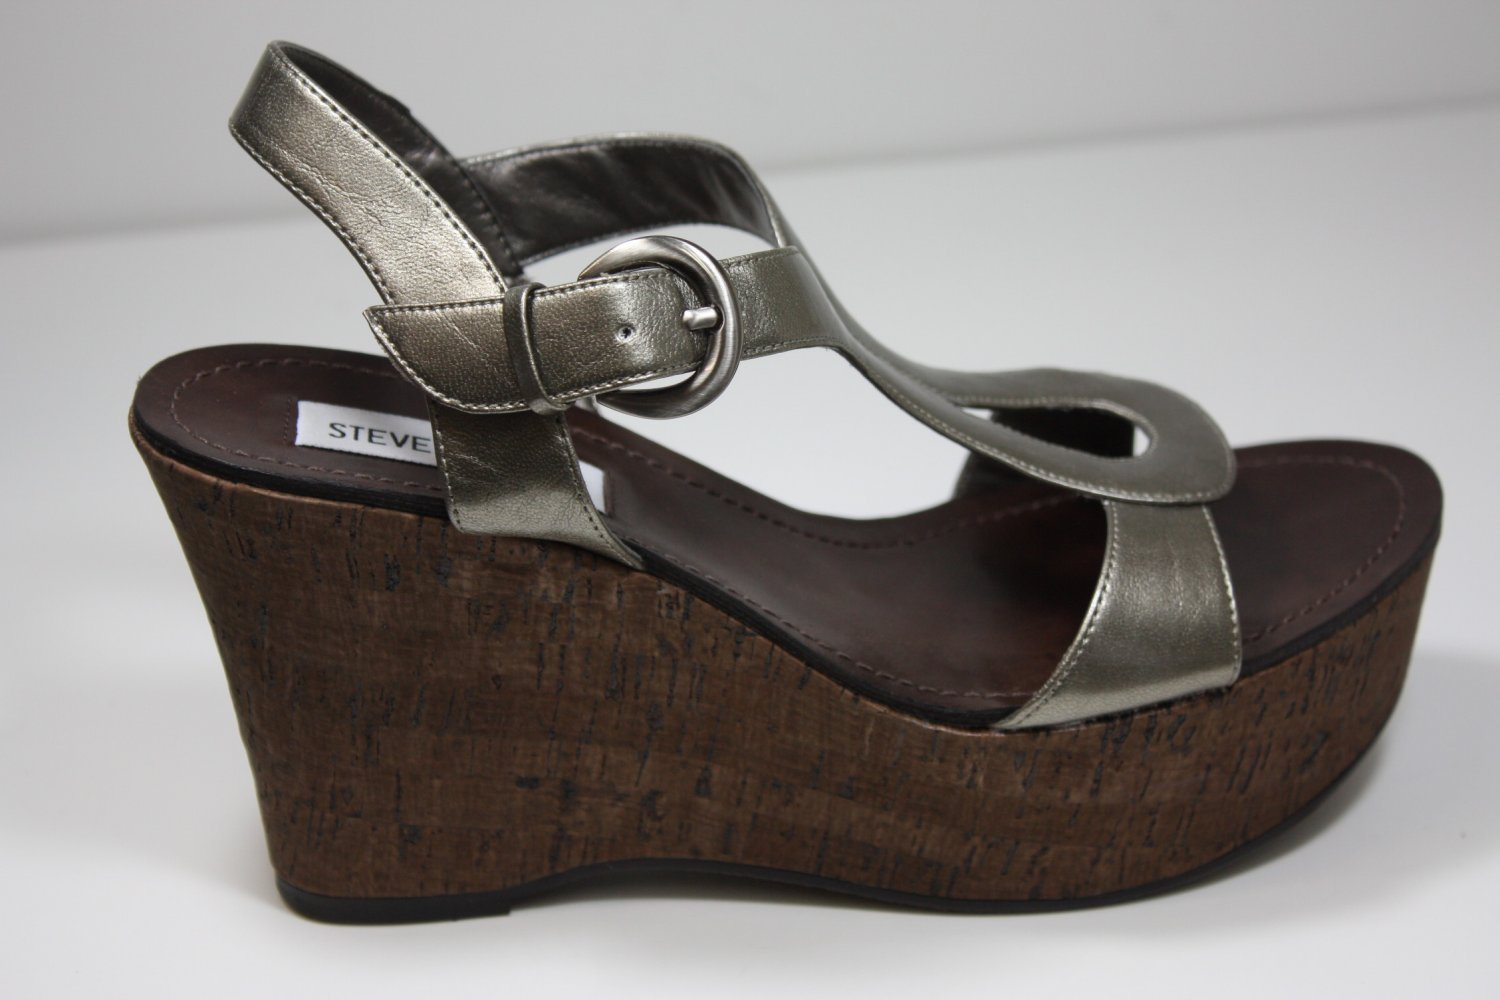 Steve Madden Caprie Sandals Bronze Shoes US 9 $79